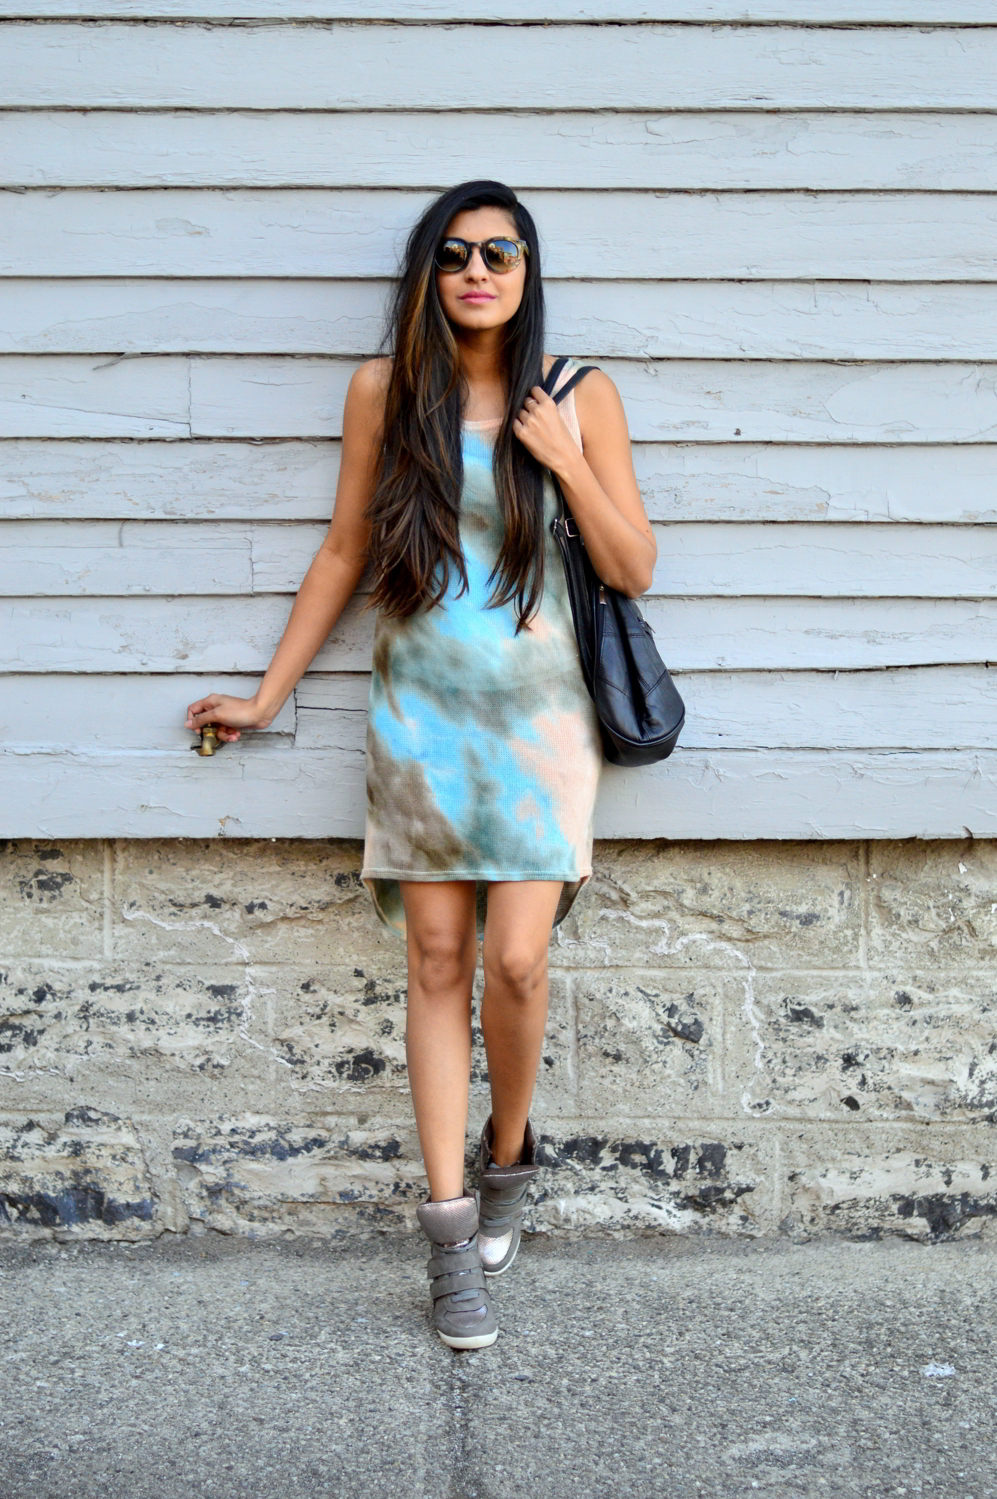 tie-dye-dress-sporty-chic-summer-casual-sneakers-backpack 6